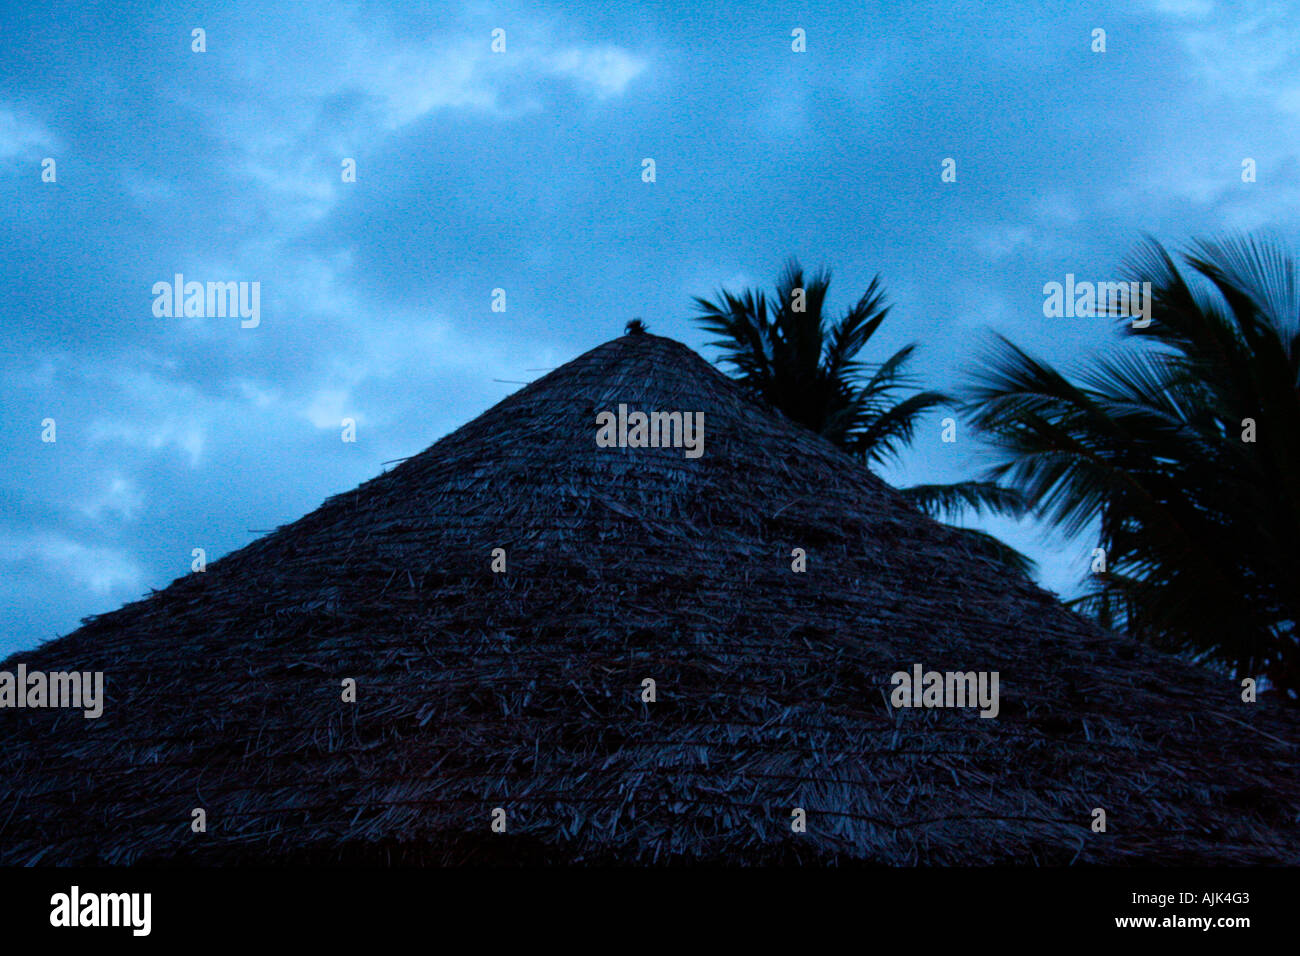 A view of the roof of a beach umbrella during day time - Stock Image